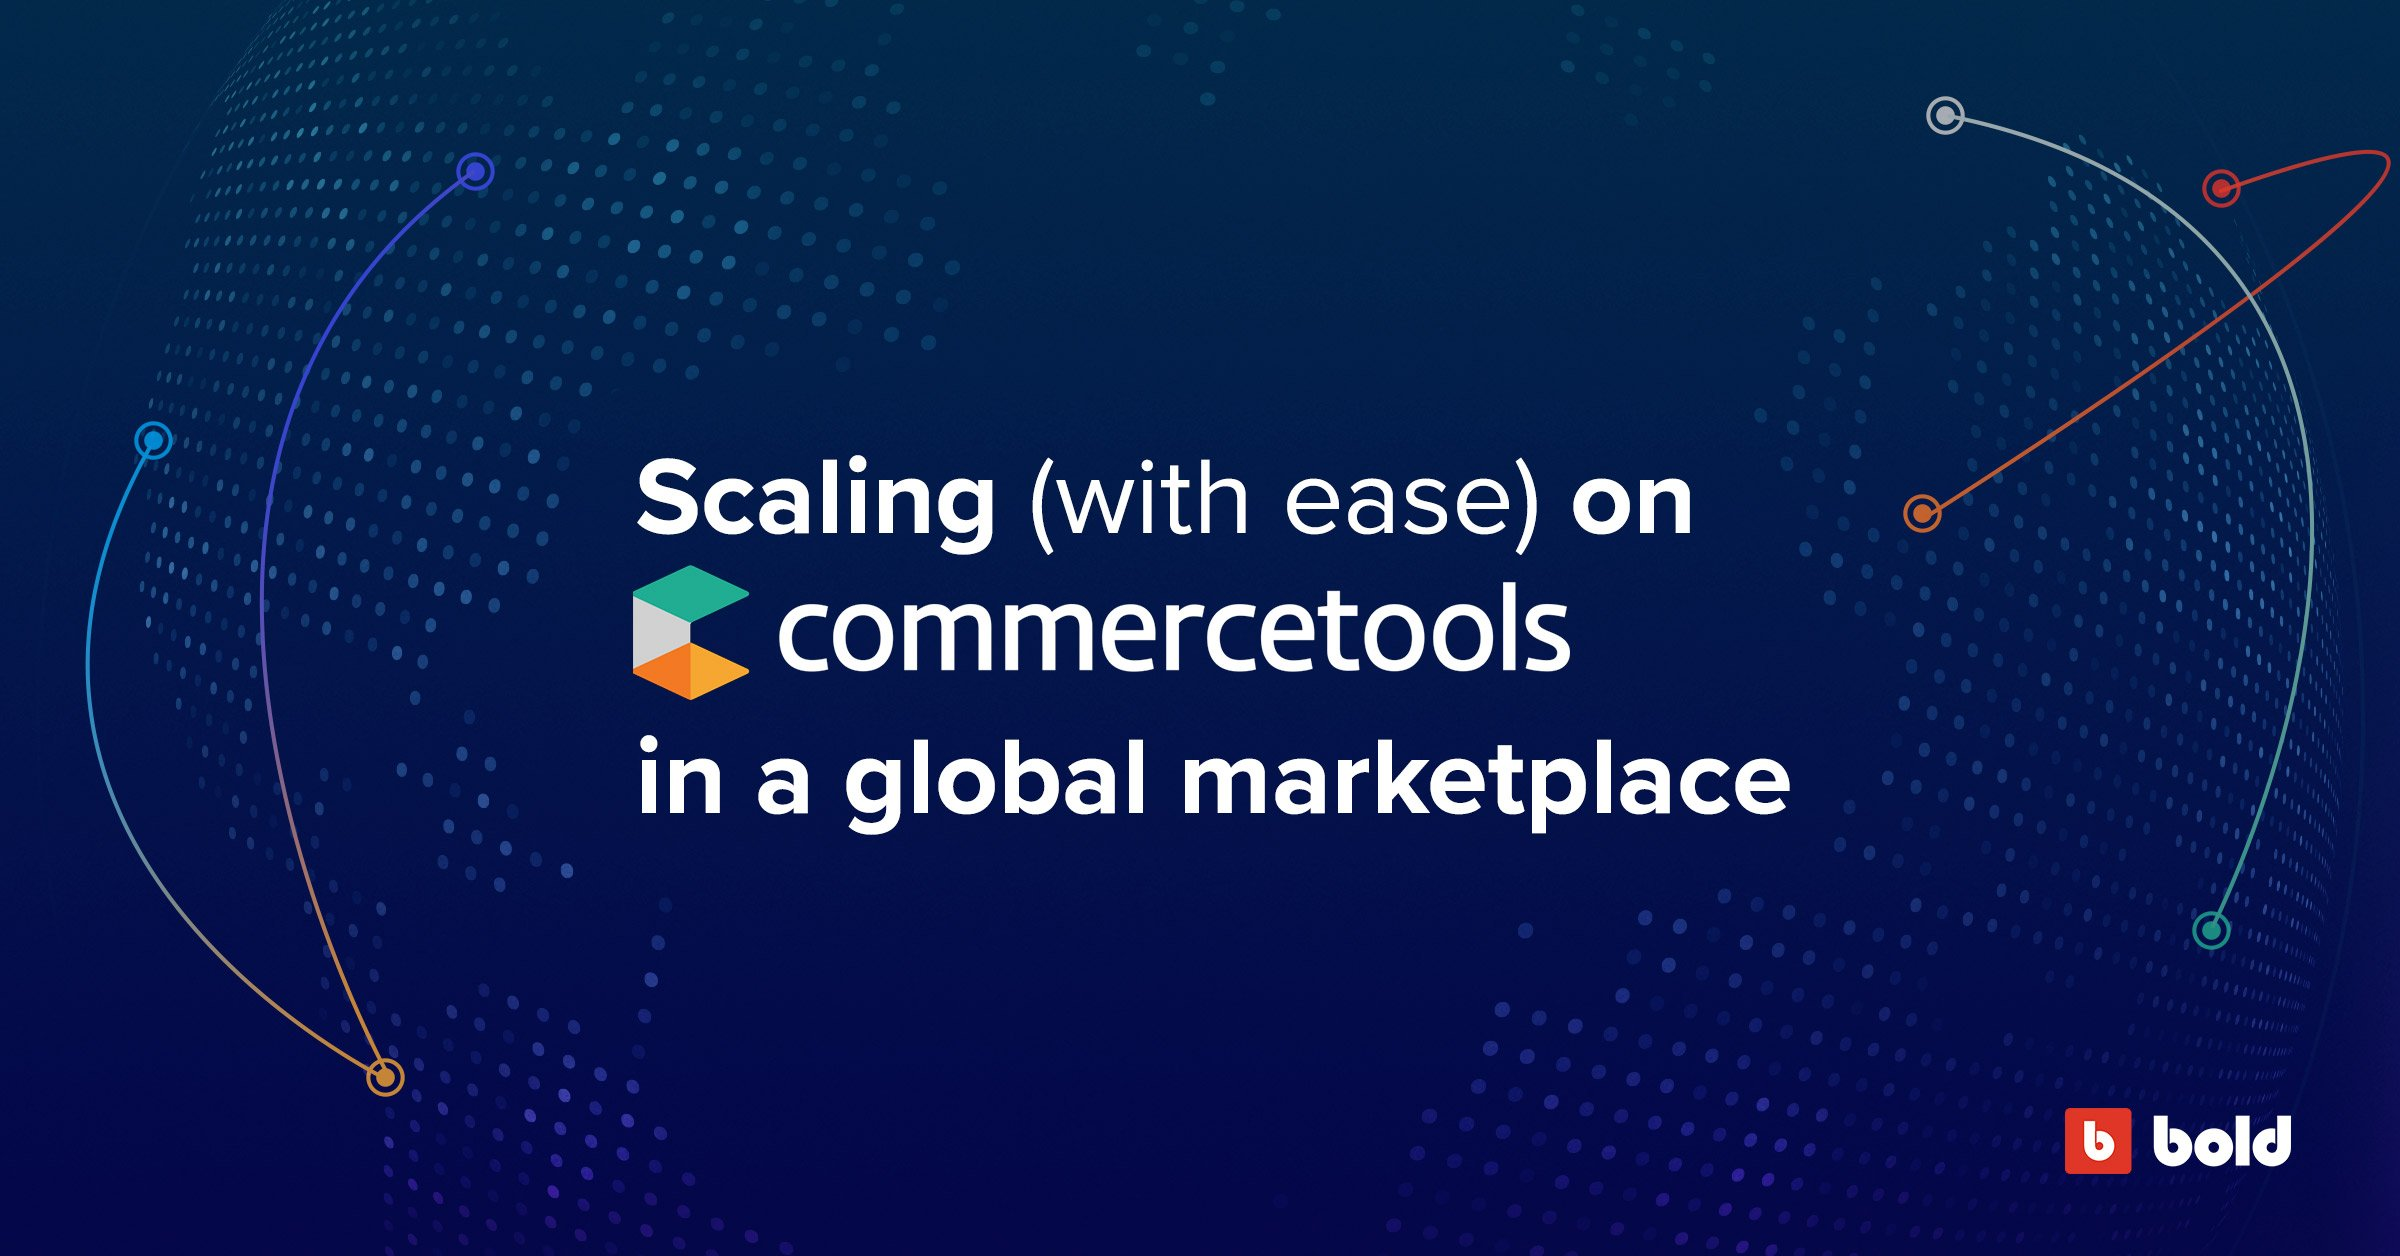 Scaling with ease on commercetools in a global marketplace